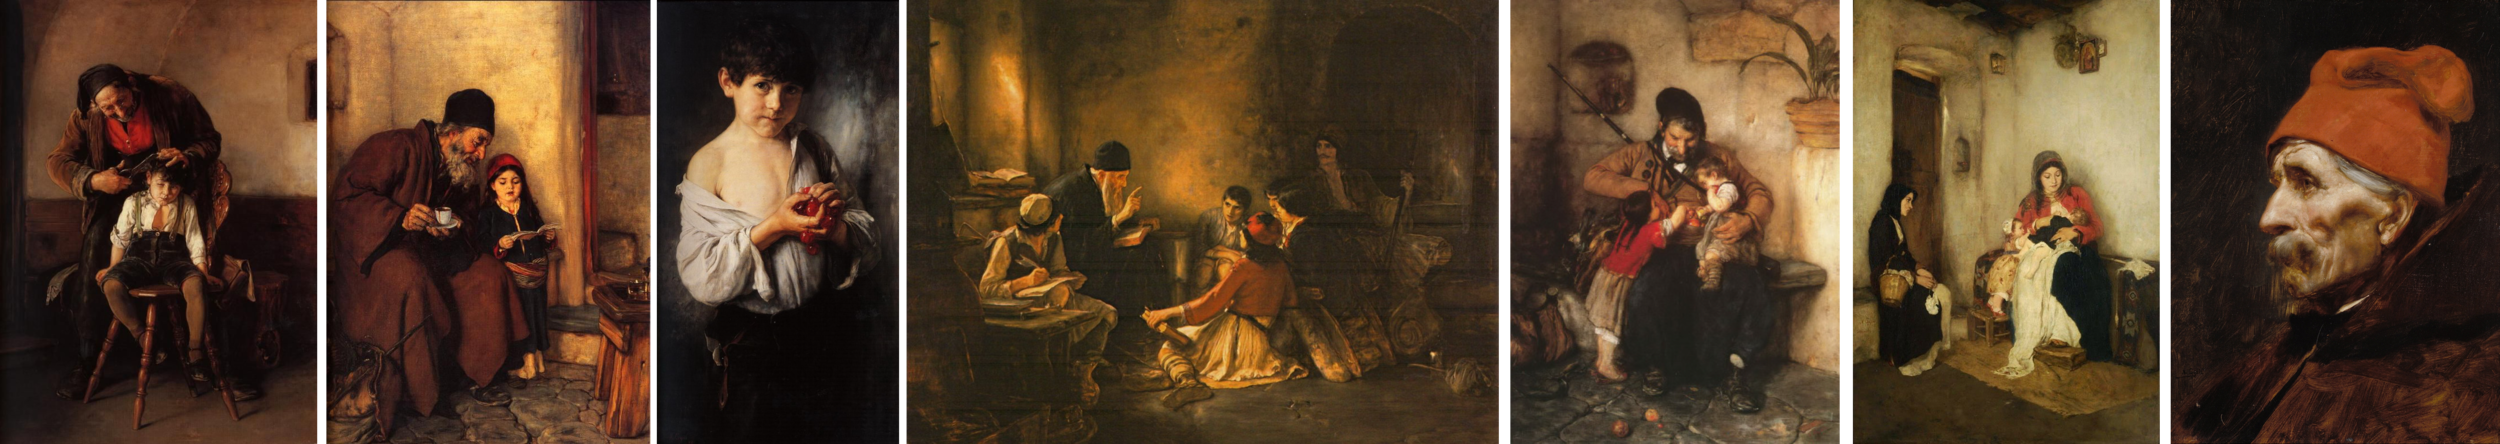 Paintings by Nicholas Gyzis, note the use of red. Left to right:  The Barbe r (1880),  First Learning  (1868), Boy with Cherries  (1888),  The Secret School  (1885),  Grandfather of Two  (date unknown), The Stepmother  (1883), Old Man Wearing a Red Fez  (date unknown)